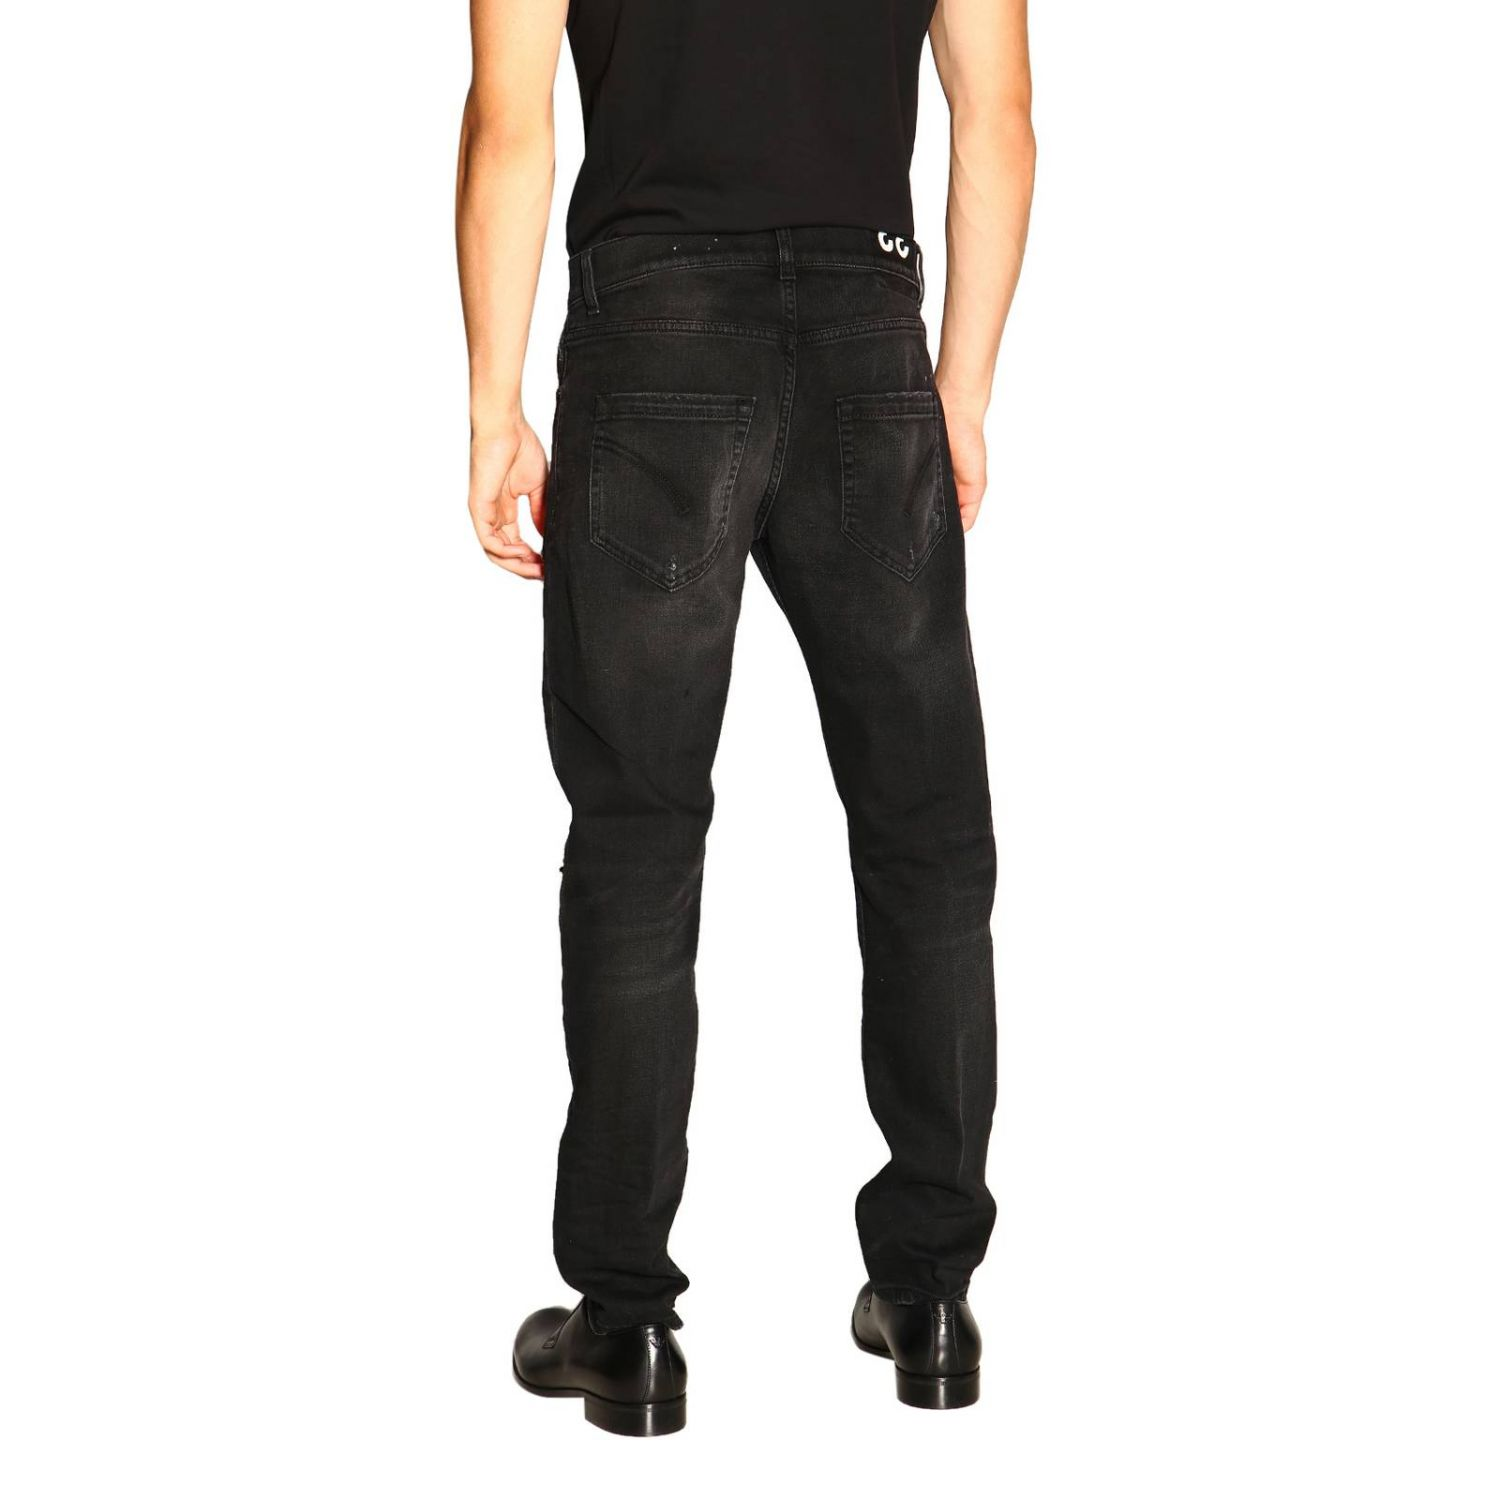 Jeans men Dondup black 3